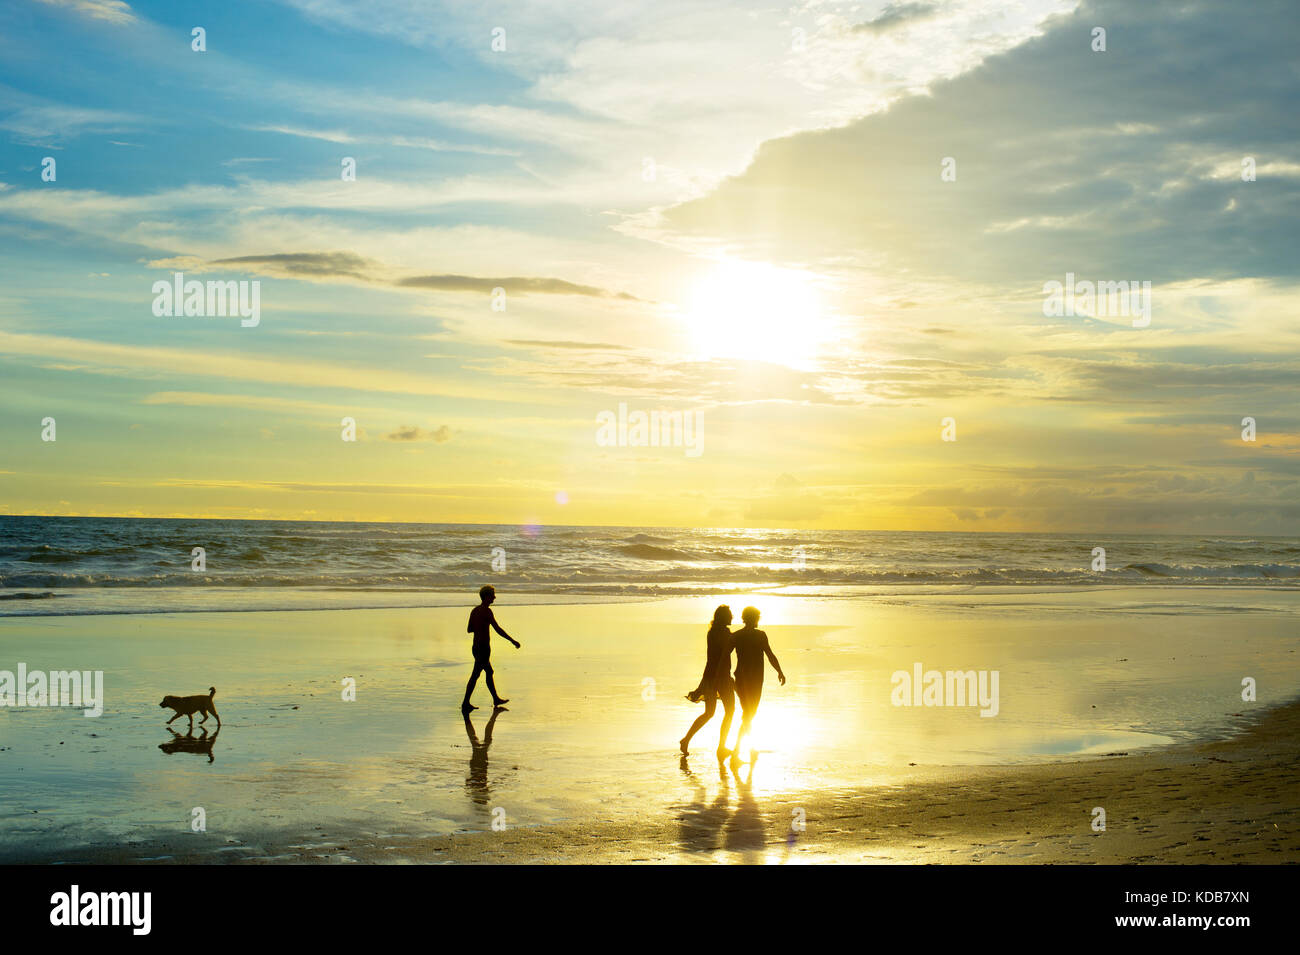 People walking on tropical Bali ocean beach at sunset. Indonesia - Stock Image